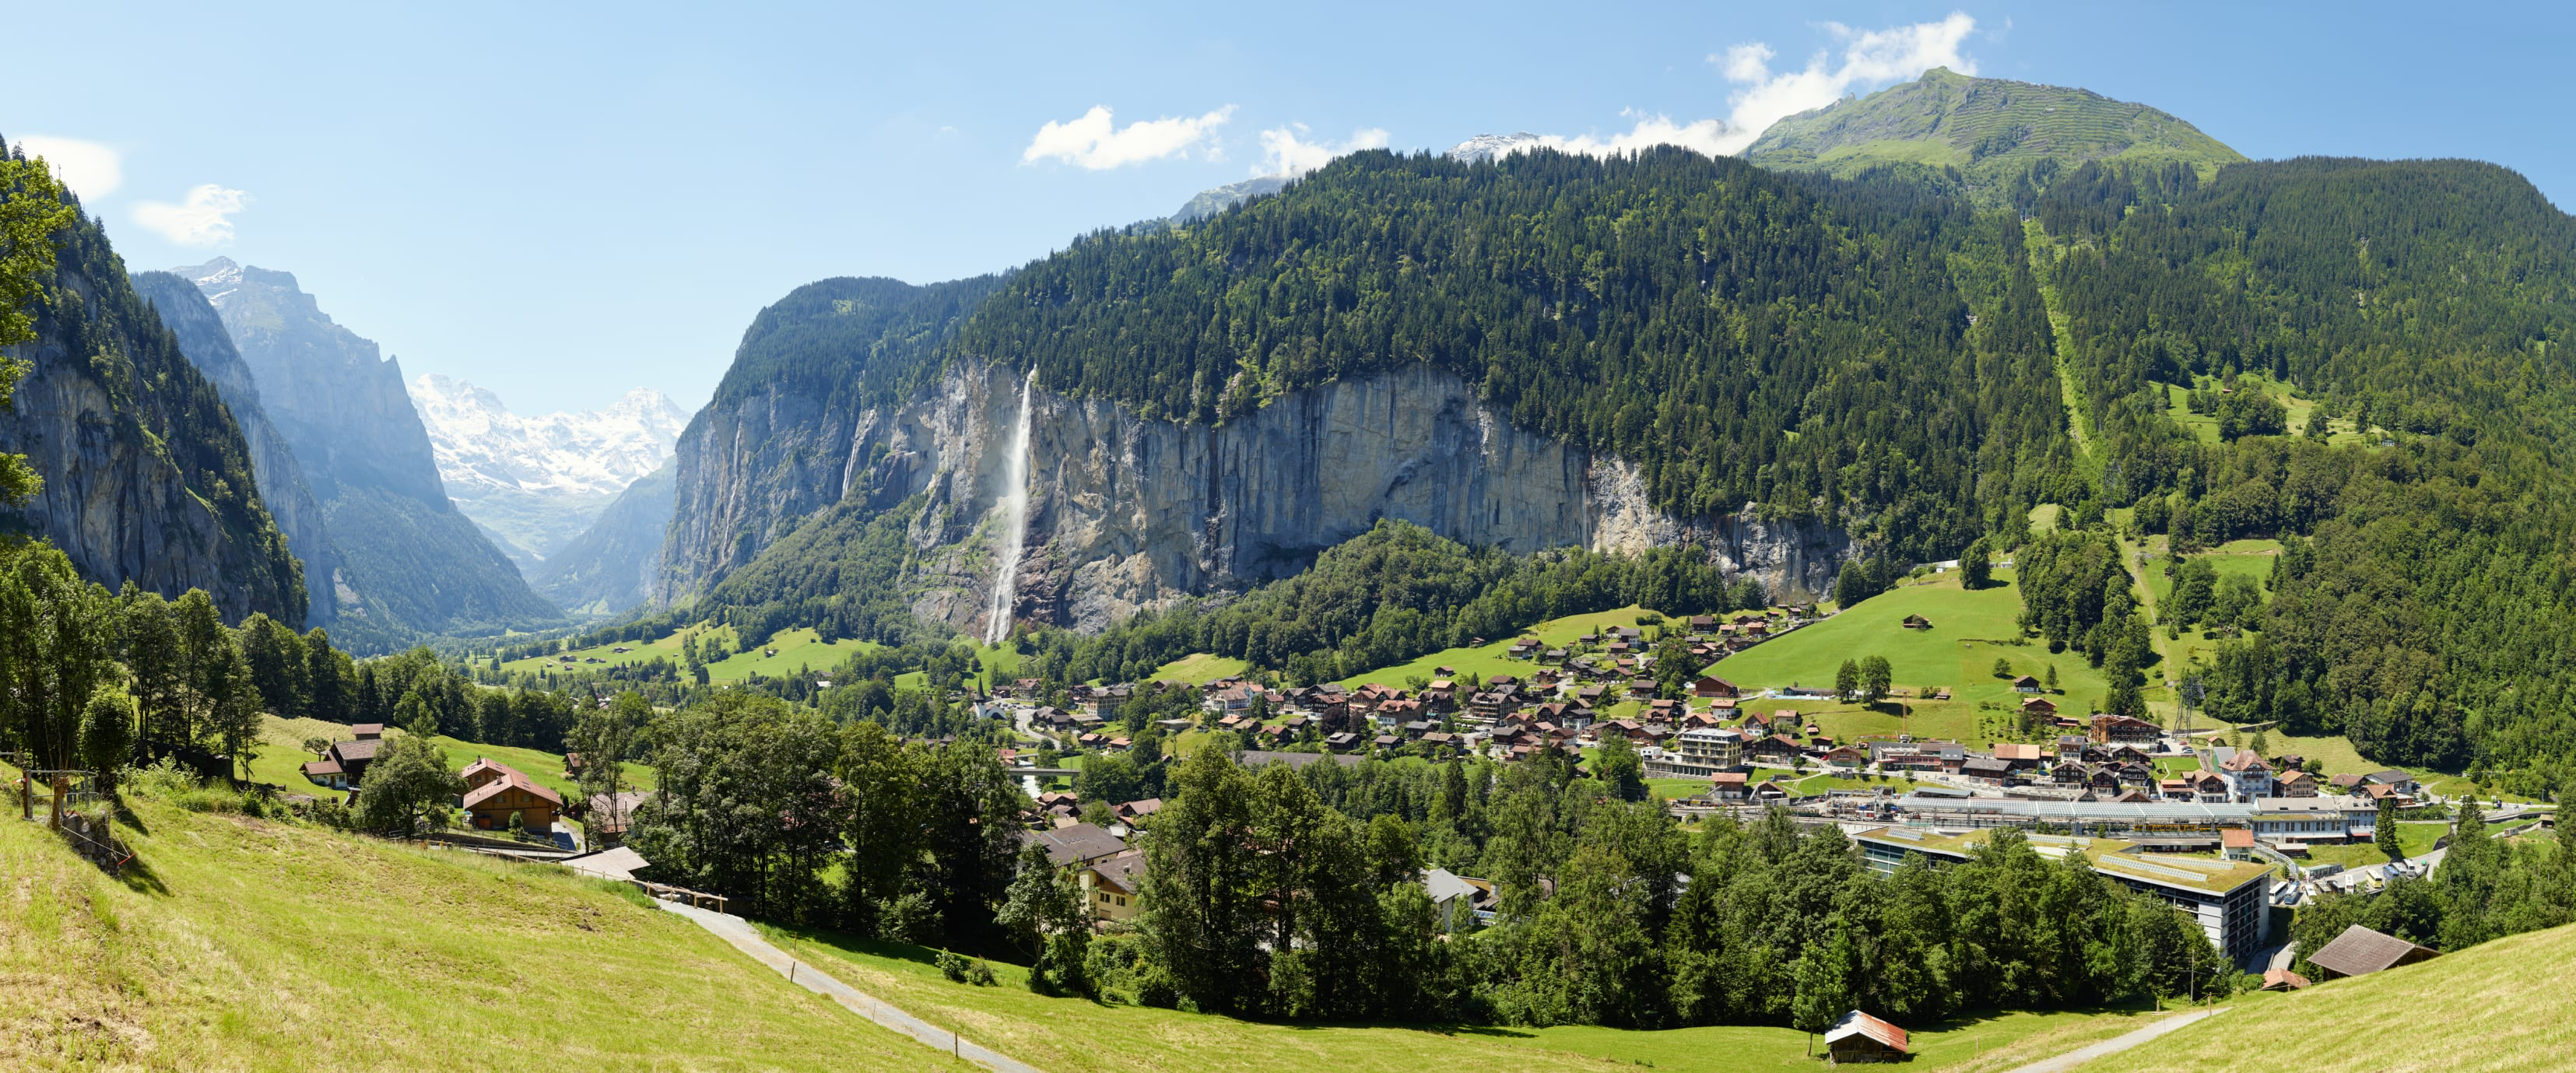 [Translate to English:] Lauterbrunnen Sommer Staubbachfall Berner Alpen